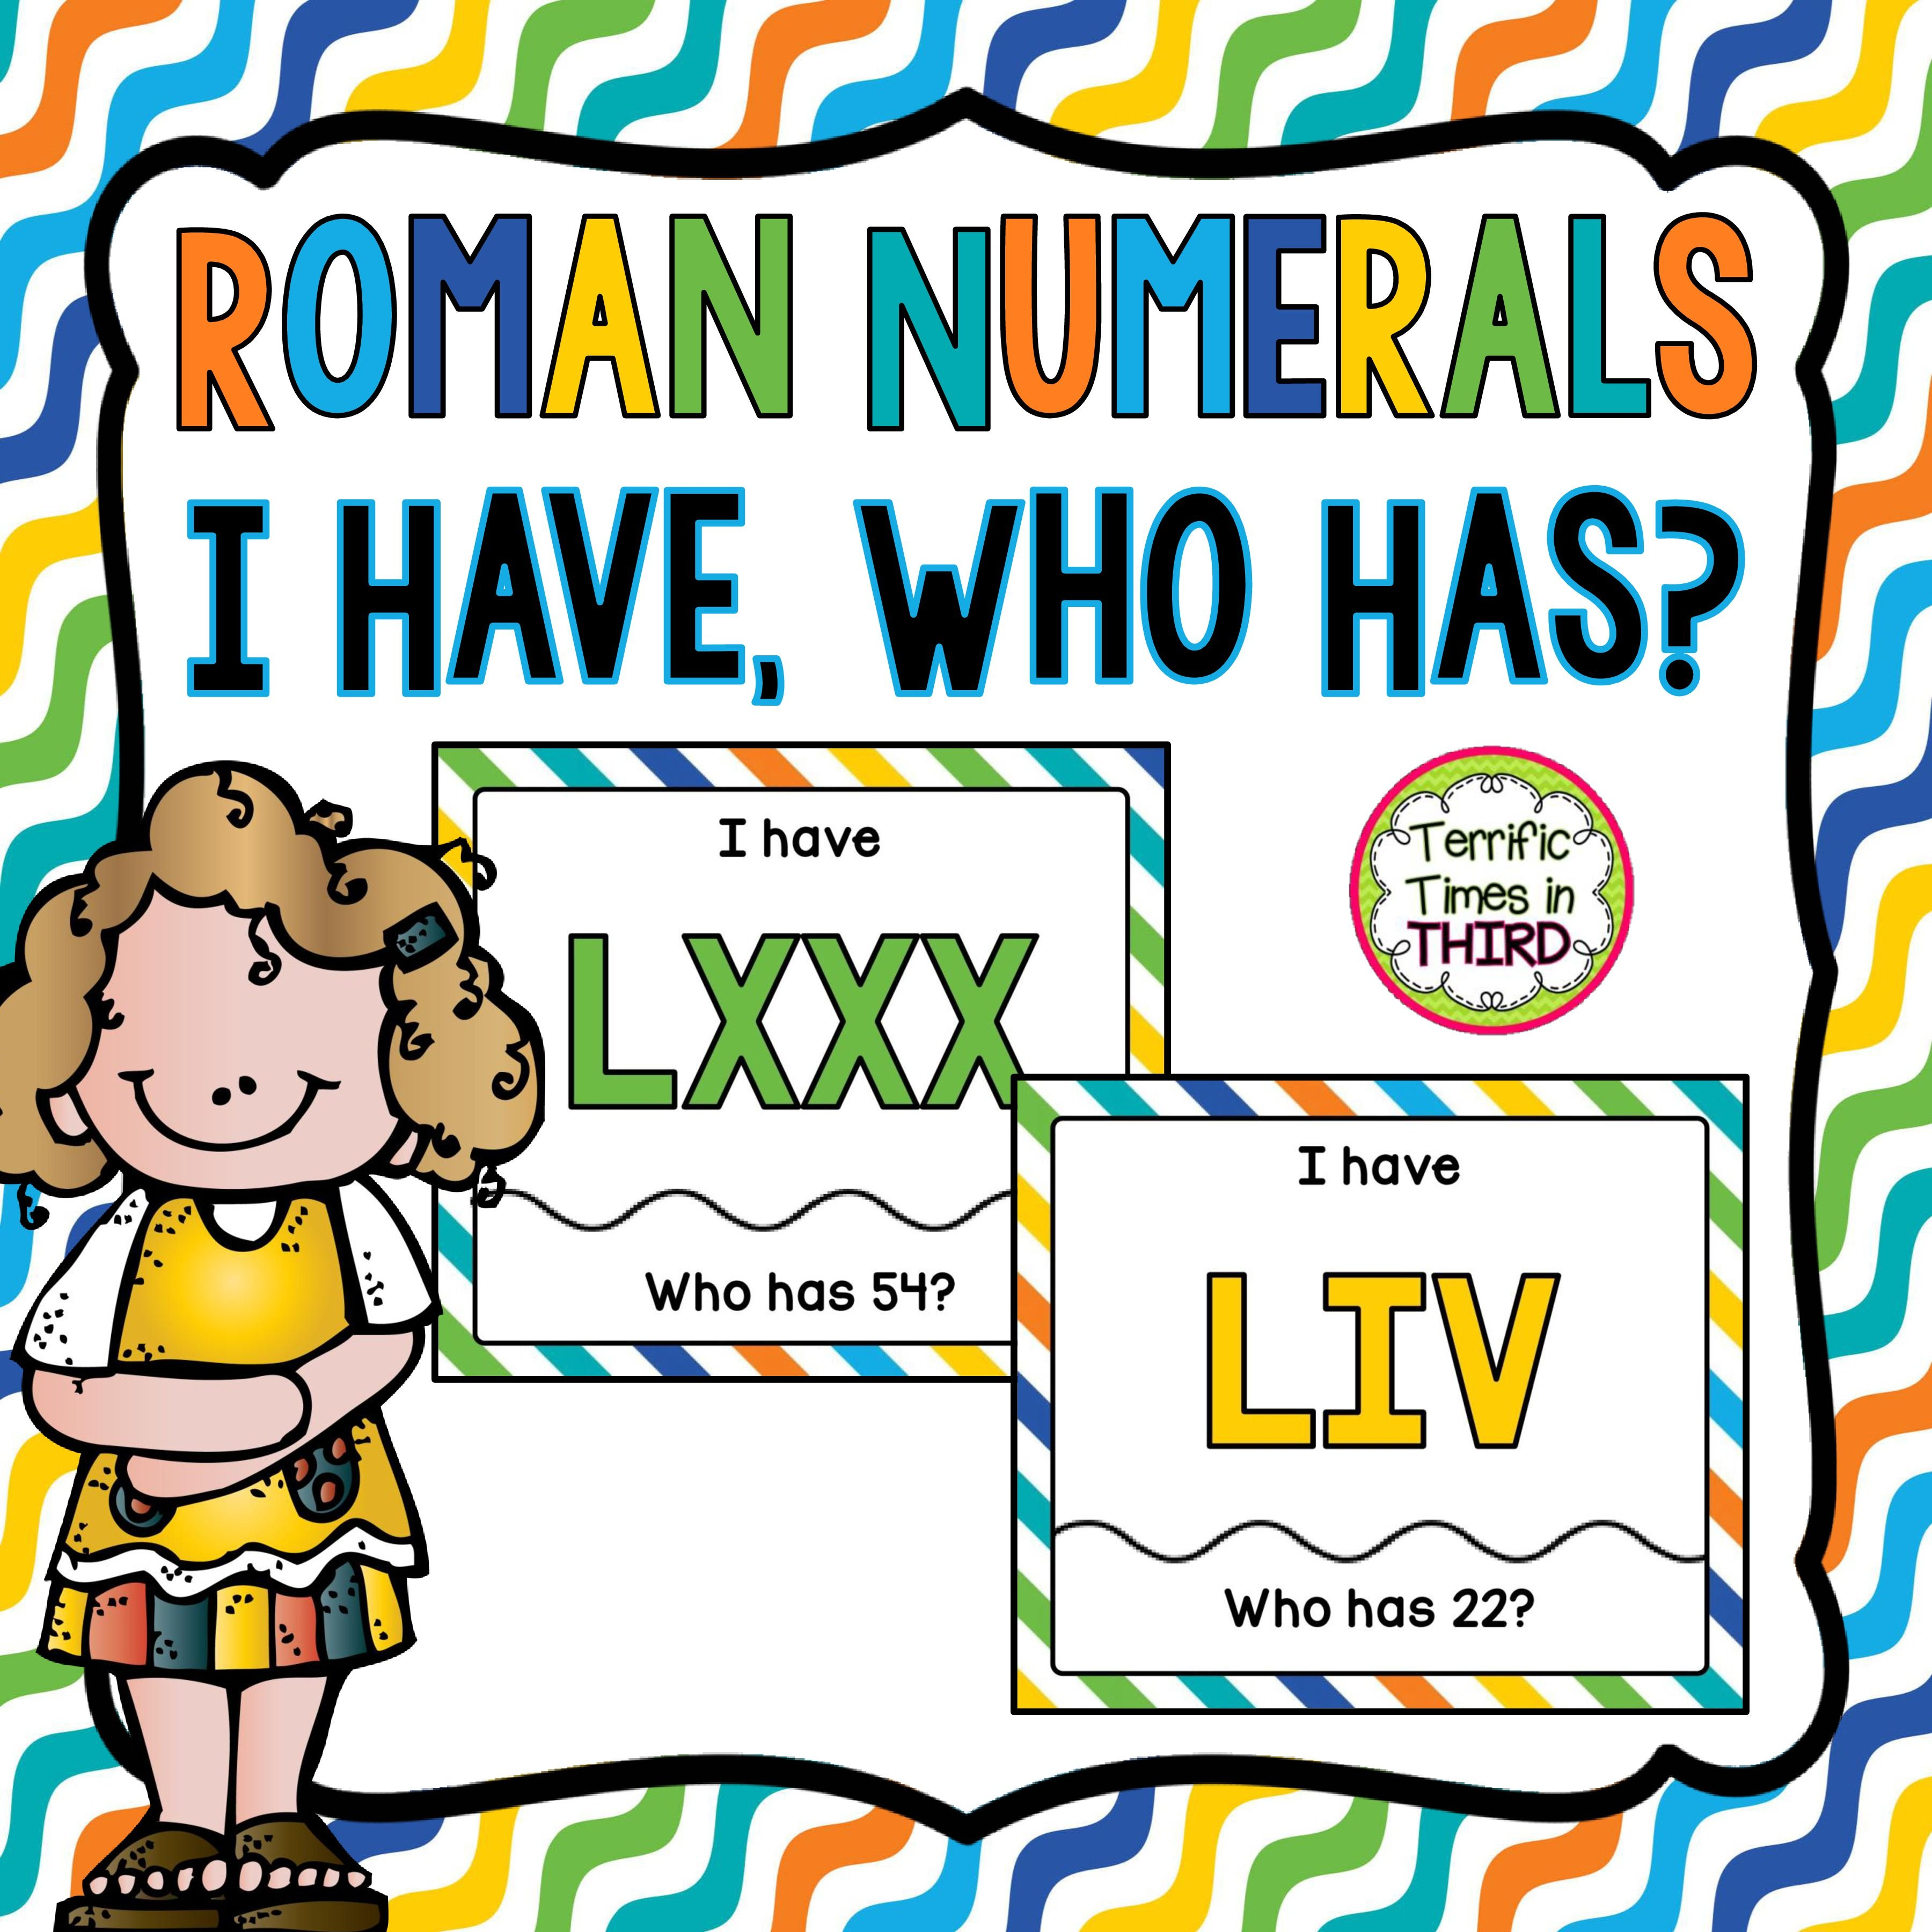 Roman Numerals I Have Who Has